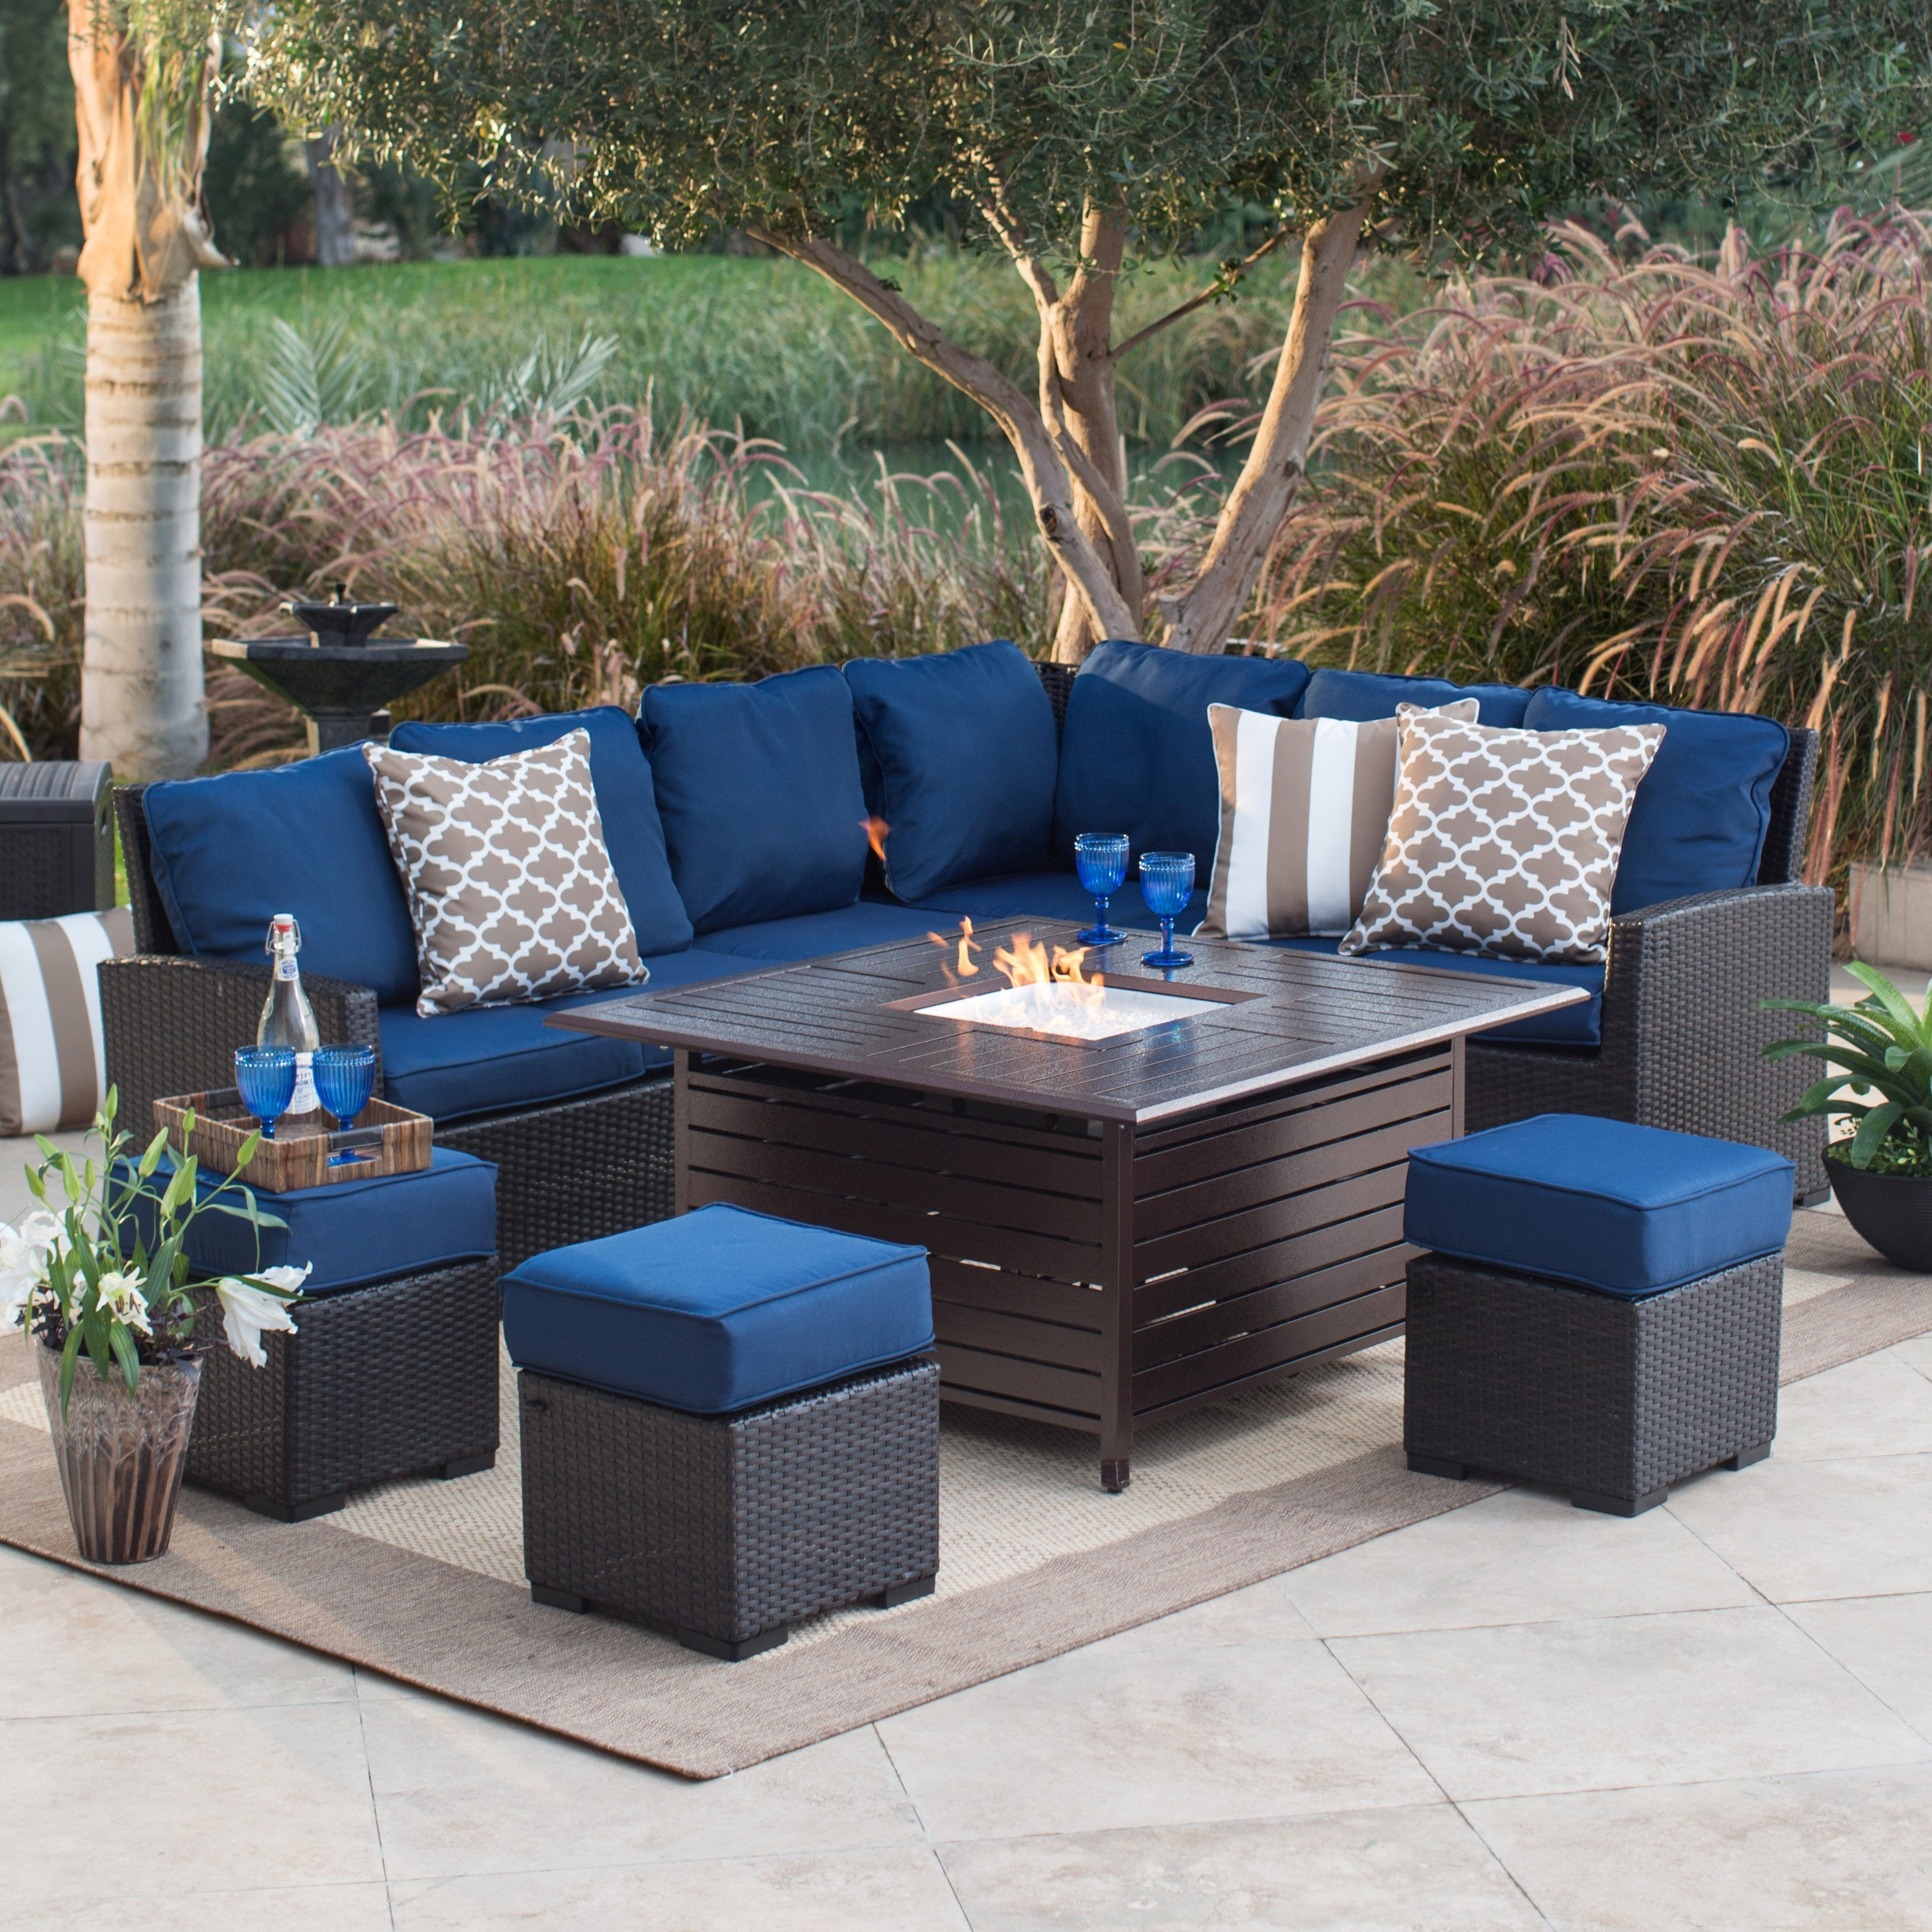 Patio Conversation Sets With Fire Pit With Newest Fire Pit Patio Sets Hayneedle Chat Set Cover Canada Captivating (View 4 of 15)